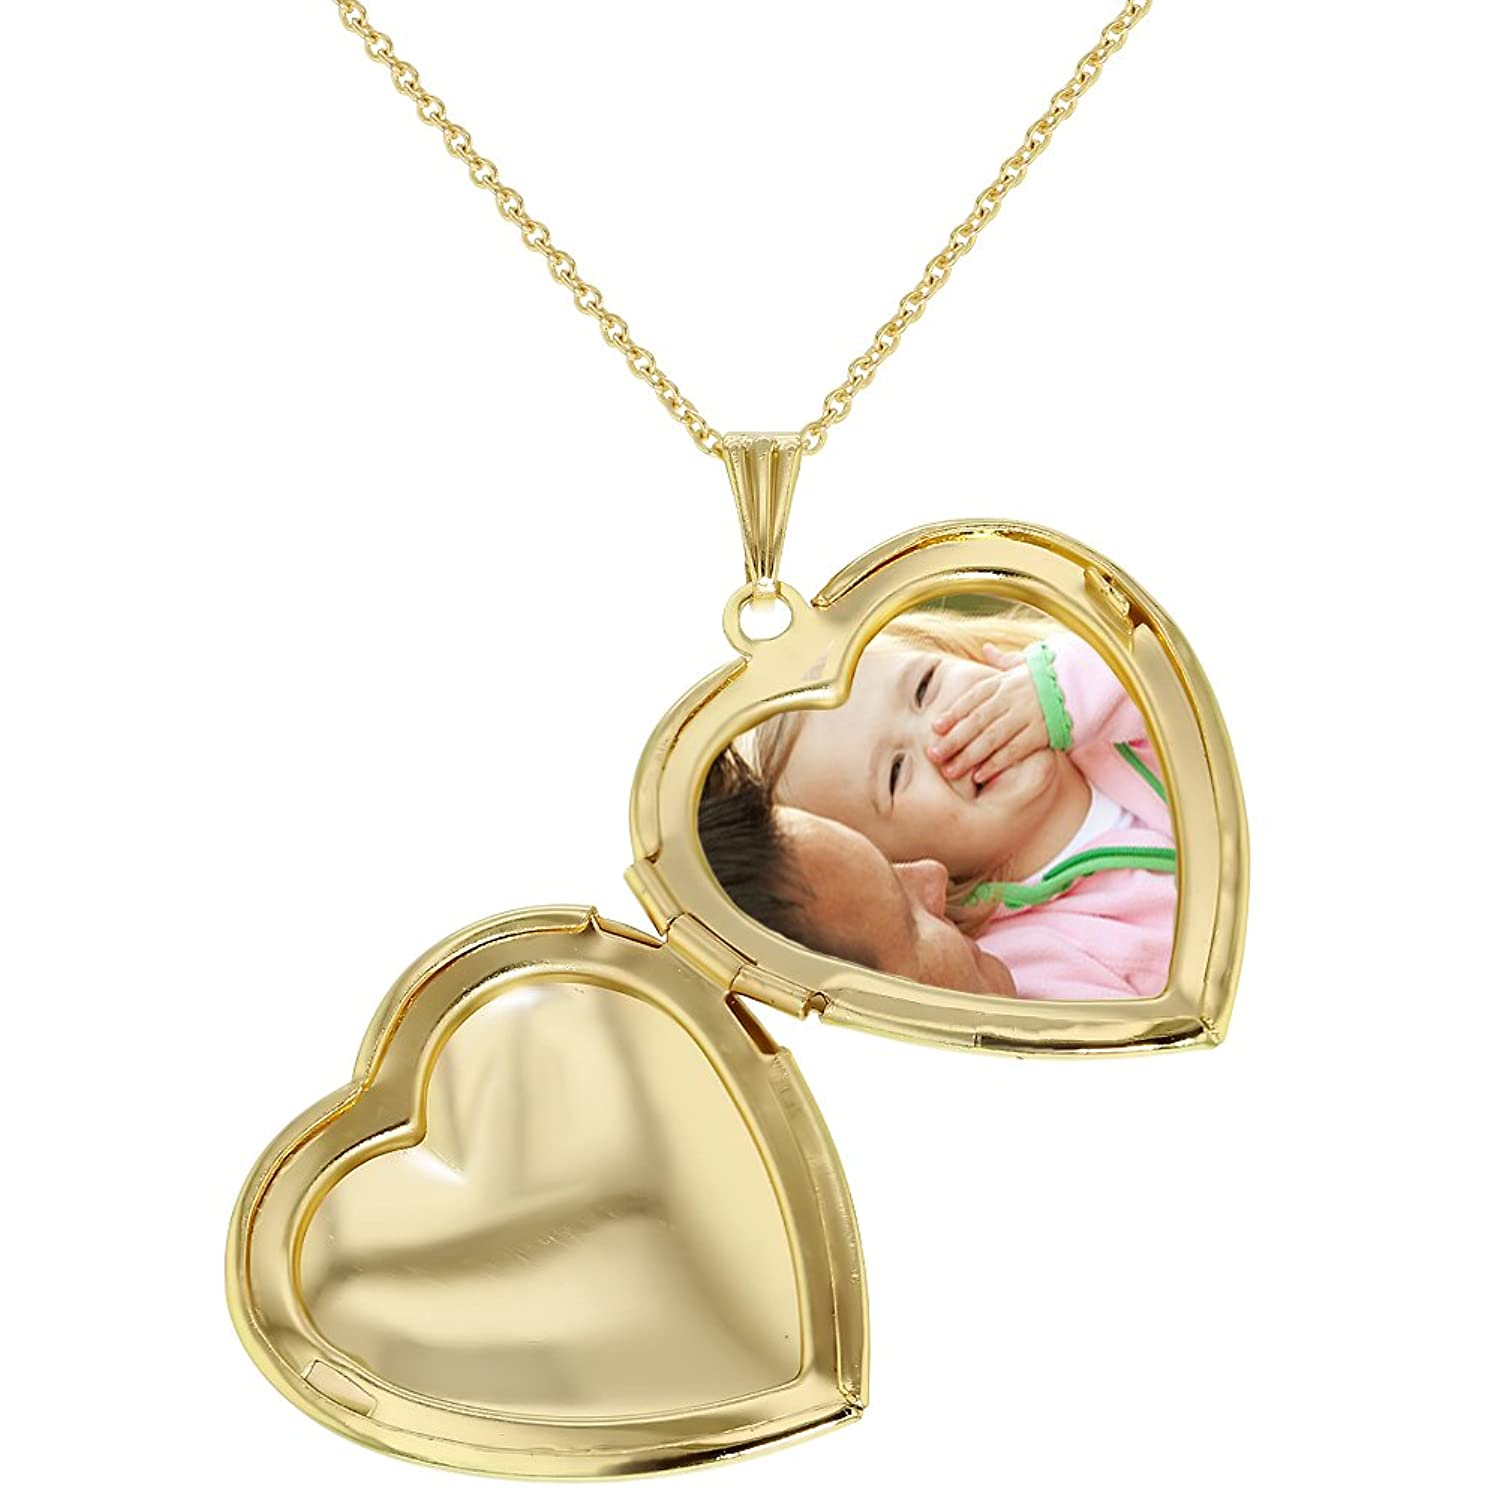 by hurleyburley locket pendant necklace original personalised heart rose gold product